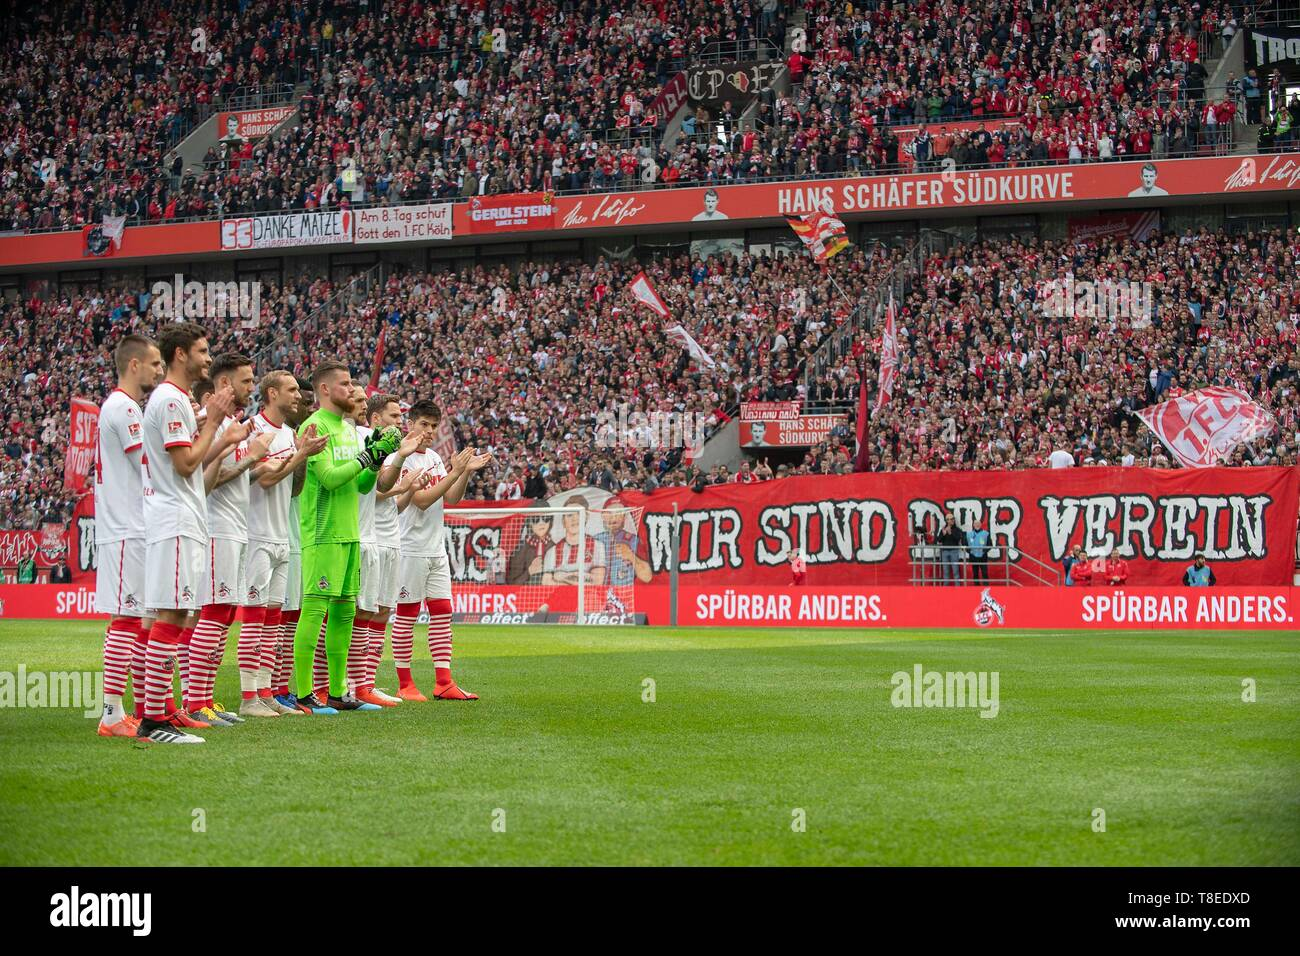 Feature, the team of K applauds Matthias LEHMANN (K) which is adopted, behind it Fankurve of K with a banner 'We are the club'. Soccer 2. Bundesliga, 33. matchday, FC Cologne (K) - Jahn Regensburg (R), on 12.05.2019 in Koeln/Germany. ## DFL regulations prohibit any use of photographs as image sequences and/or quasi-video ## ¬ | usage worldwide - Stock Image